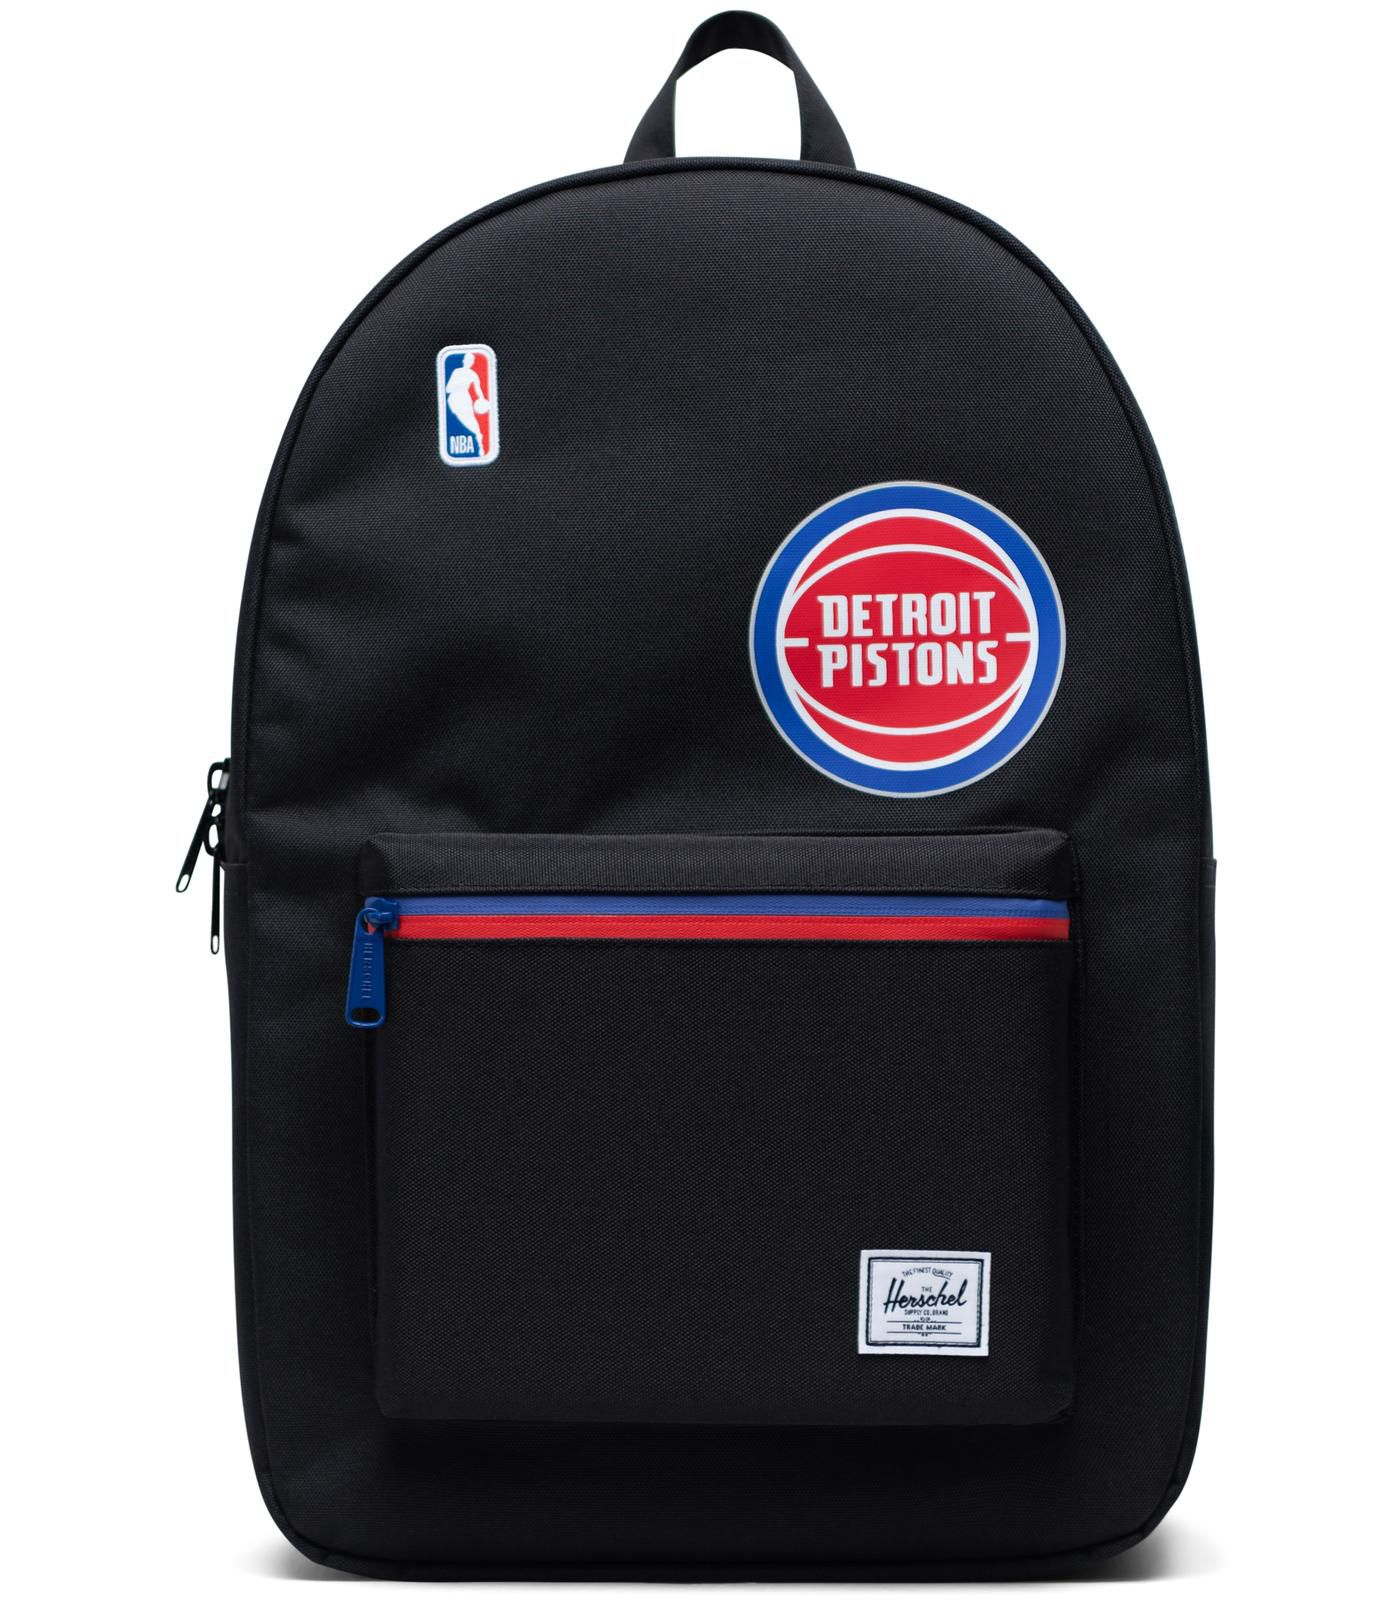 Herschel Detroit Pistons Black Settlement Backpack